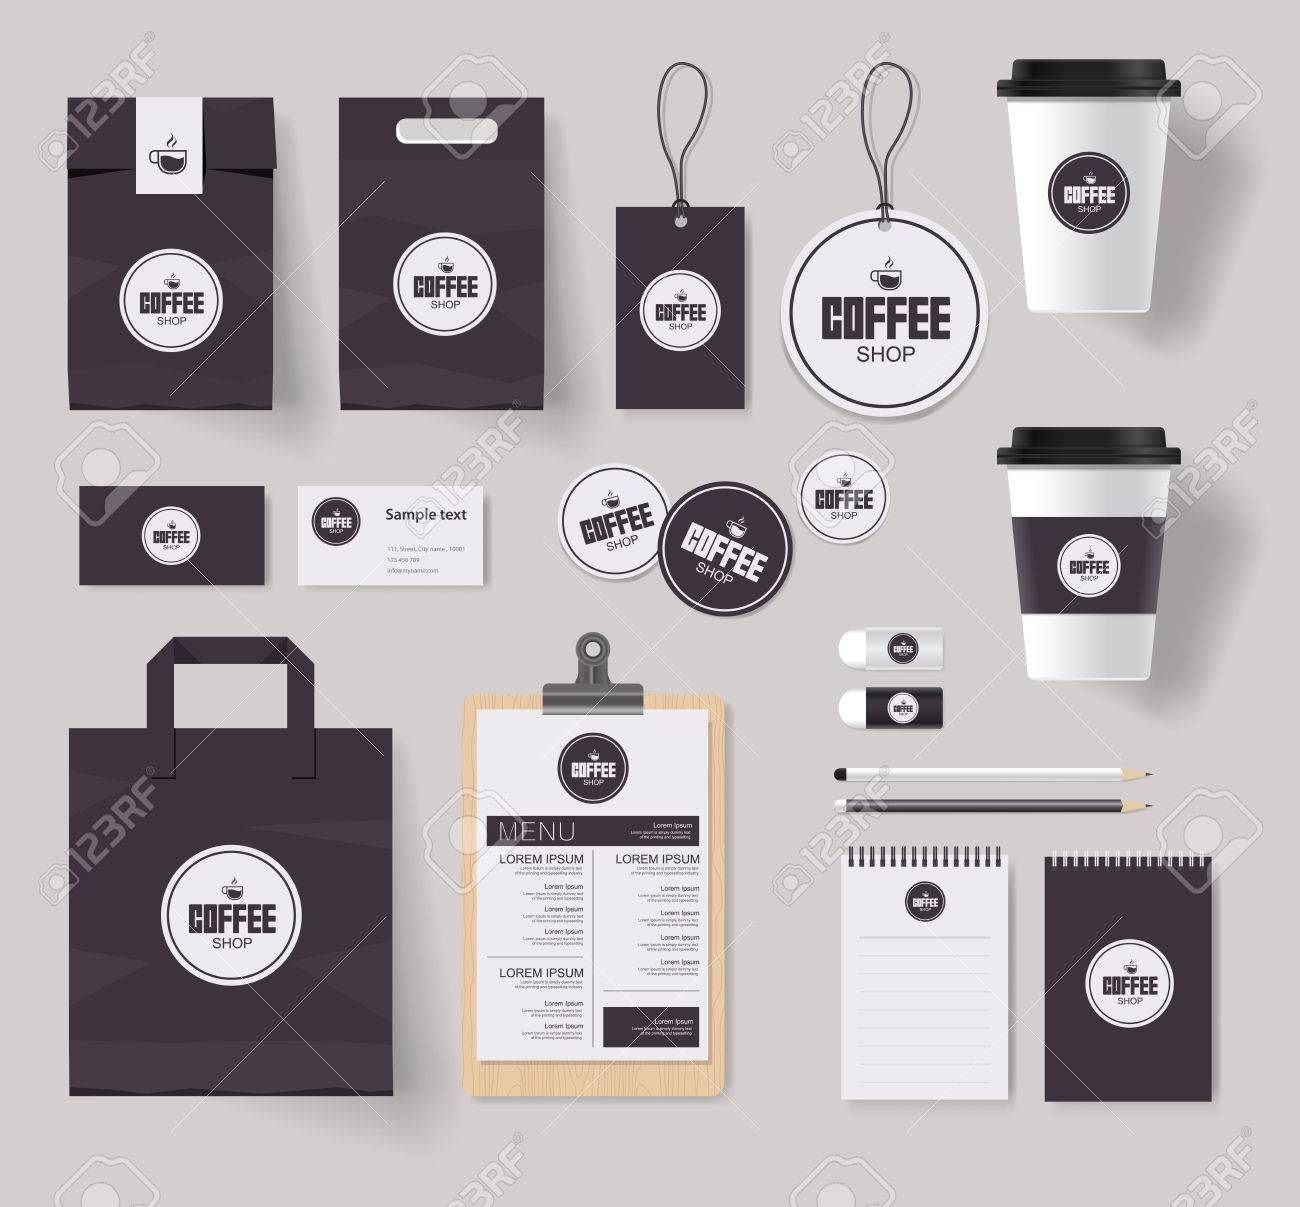 coffee shop and restaurant branding identity mock up template with coffee logo design stock vector